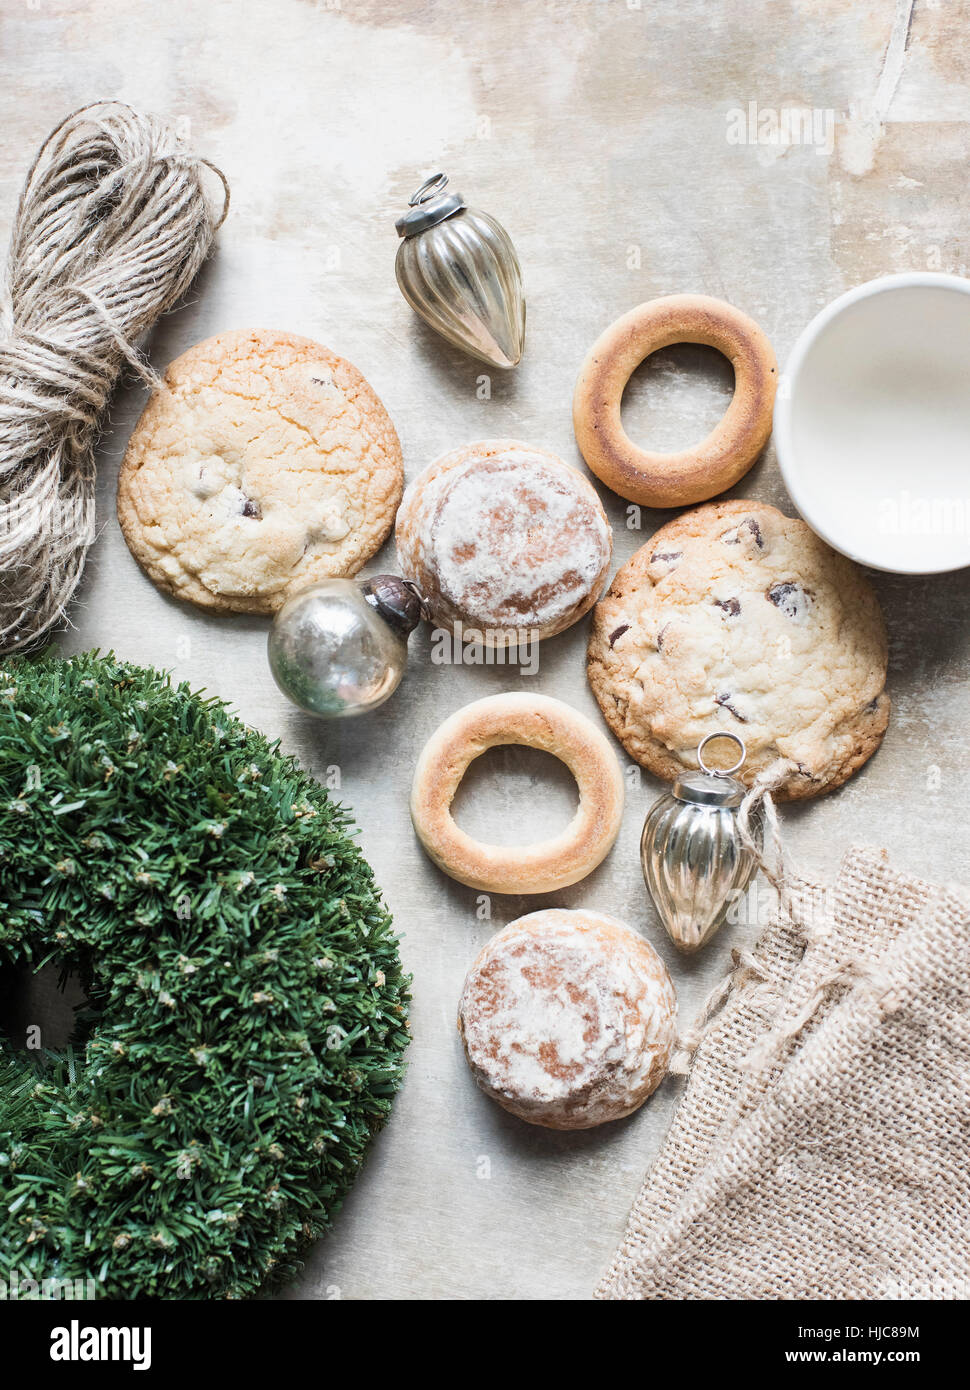 Overhead view of silver Christmas baubles and fresh cookies and bagels - Stock Image